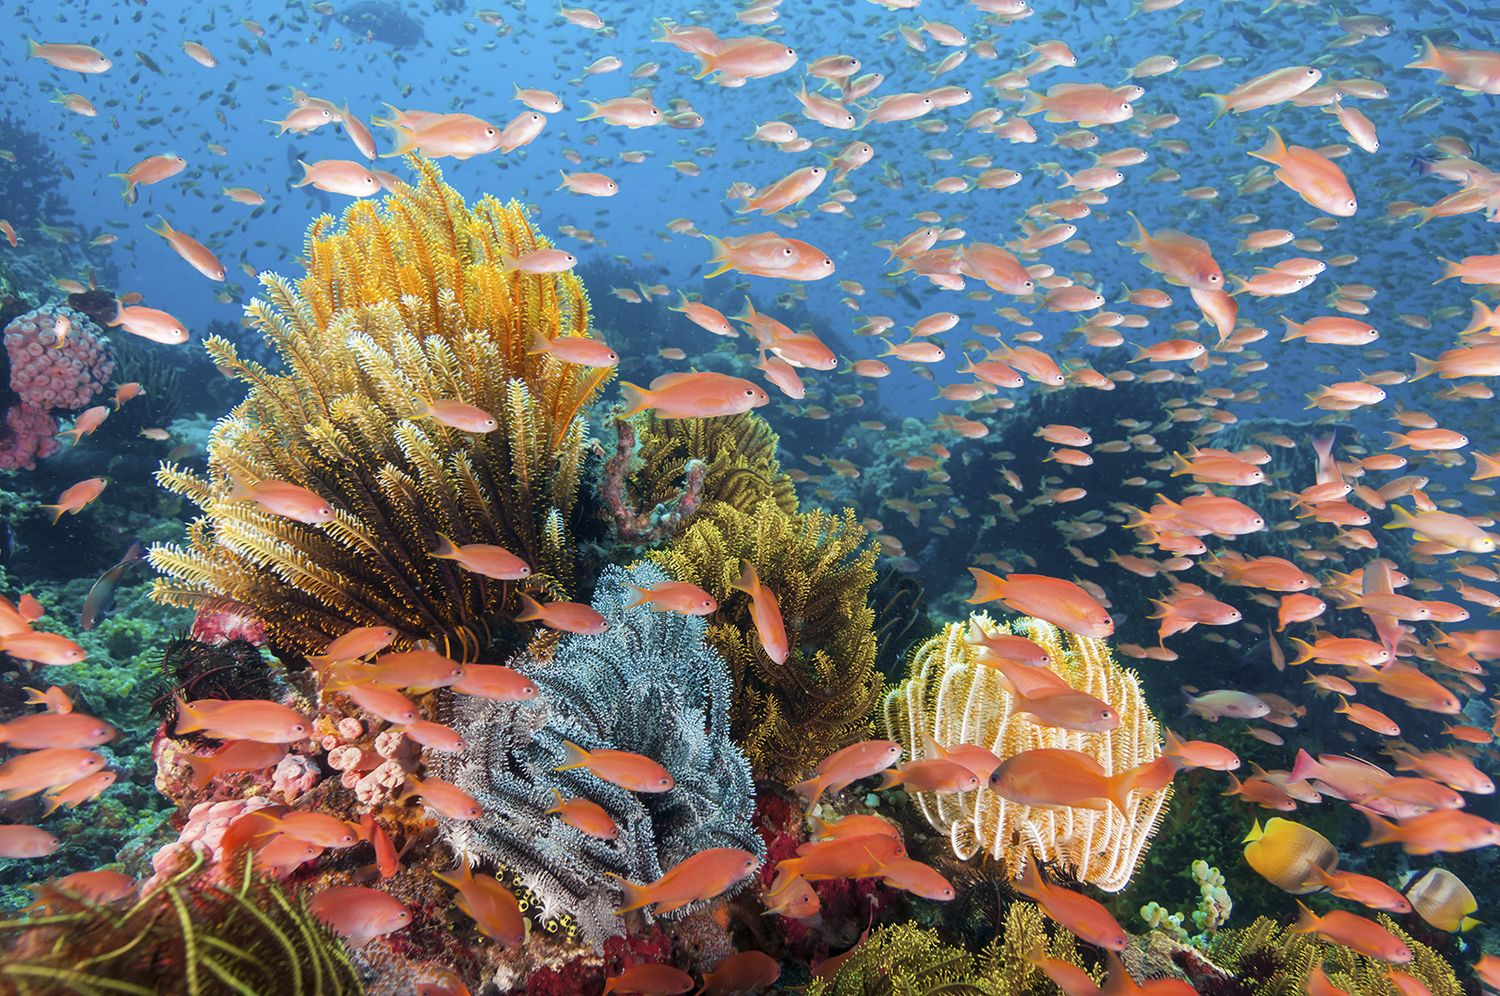 Anthias on the reef at wakatobi – photo Walt Stearns